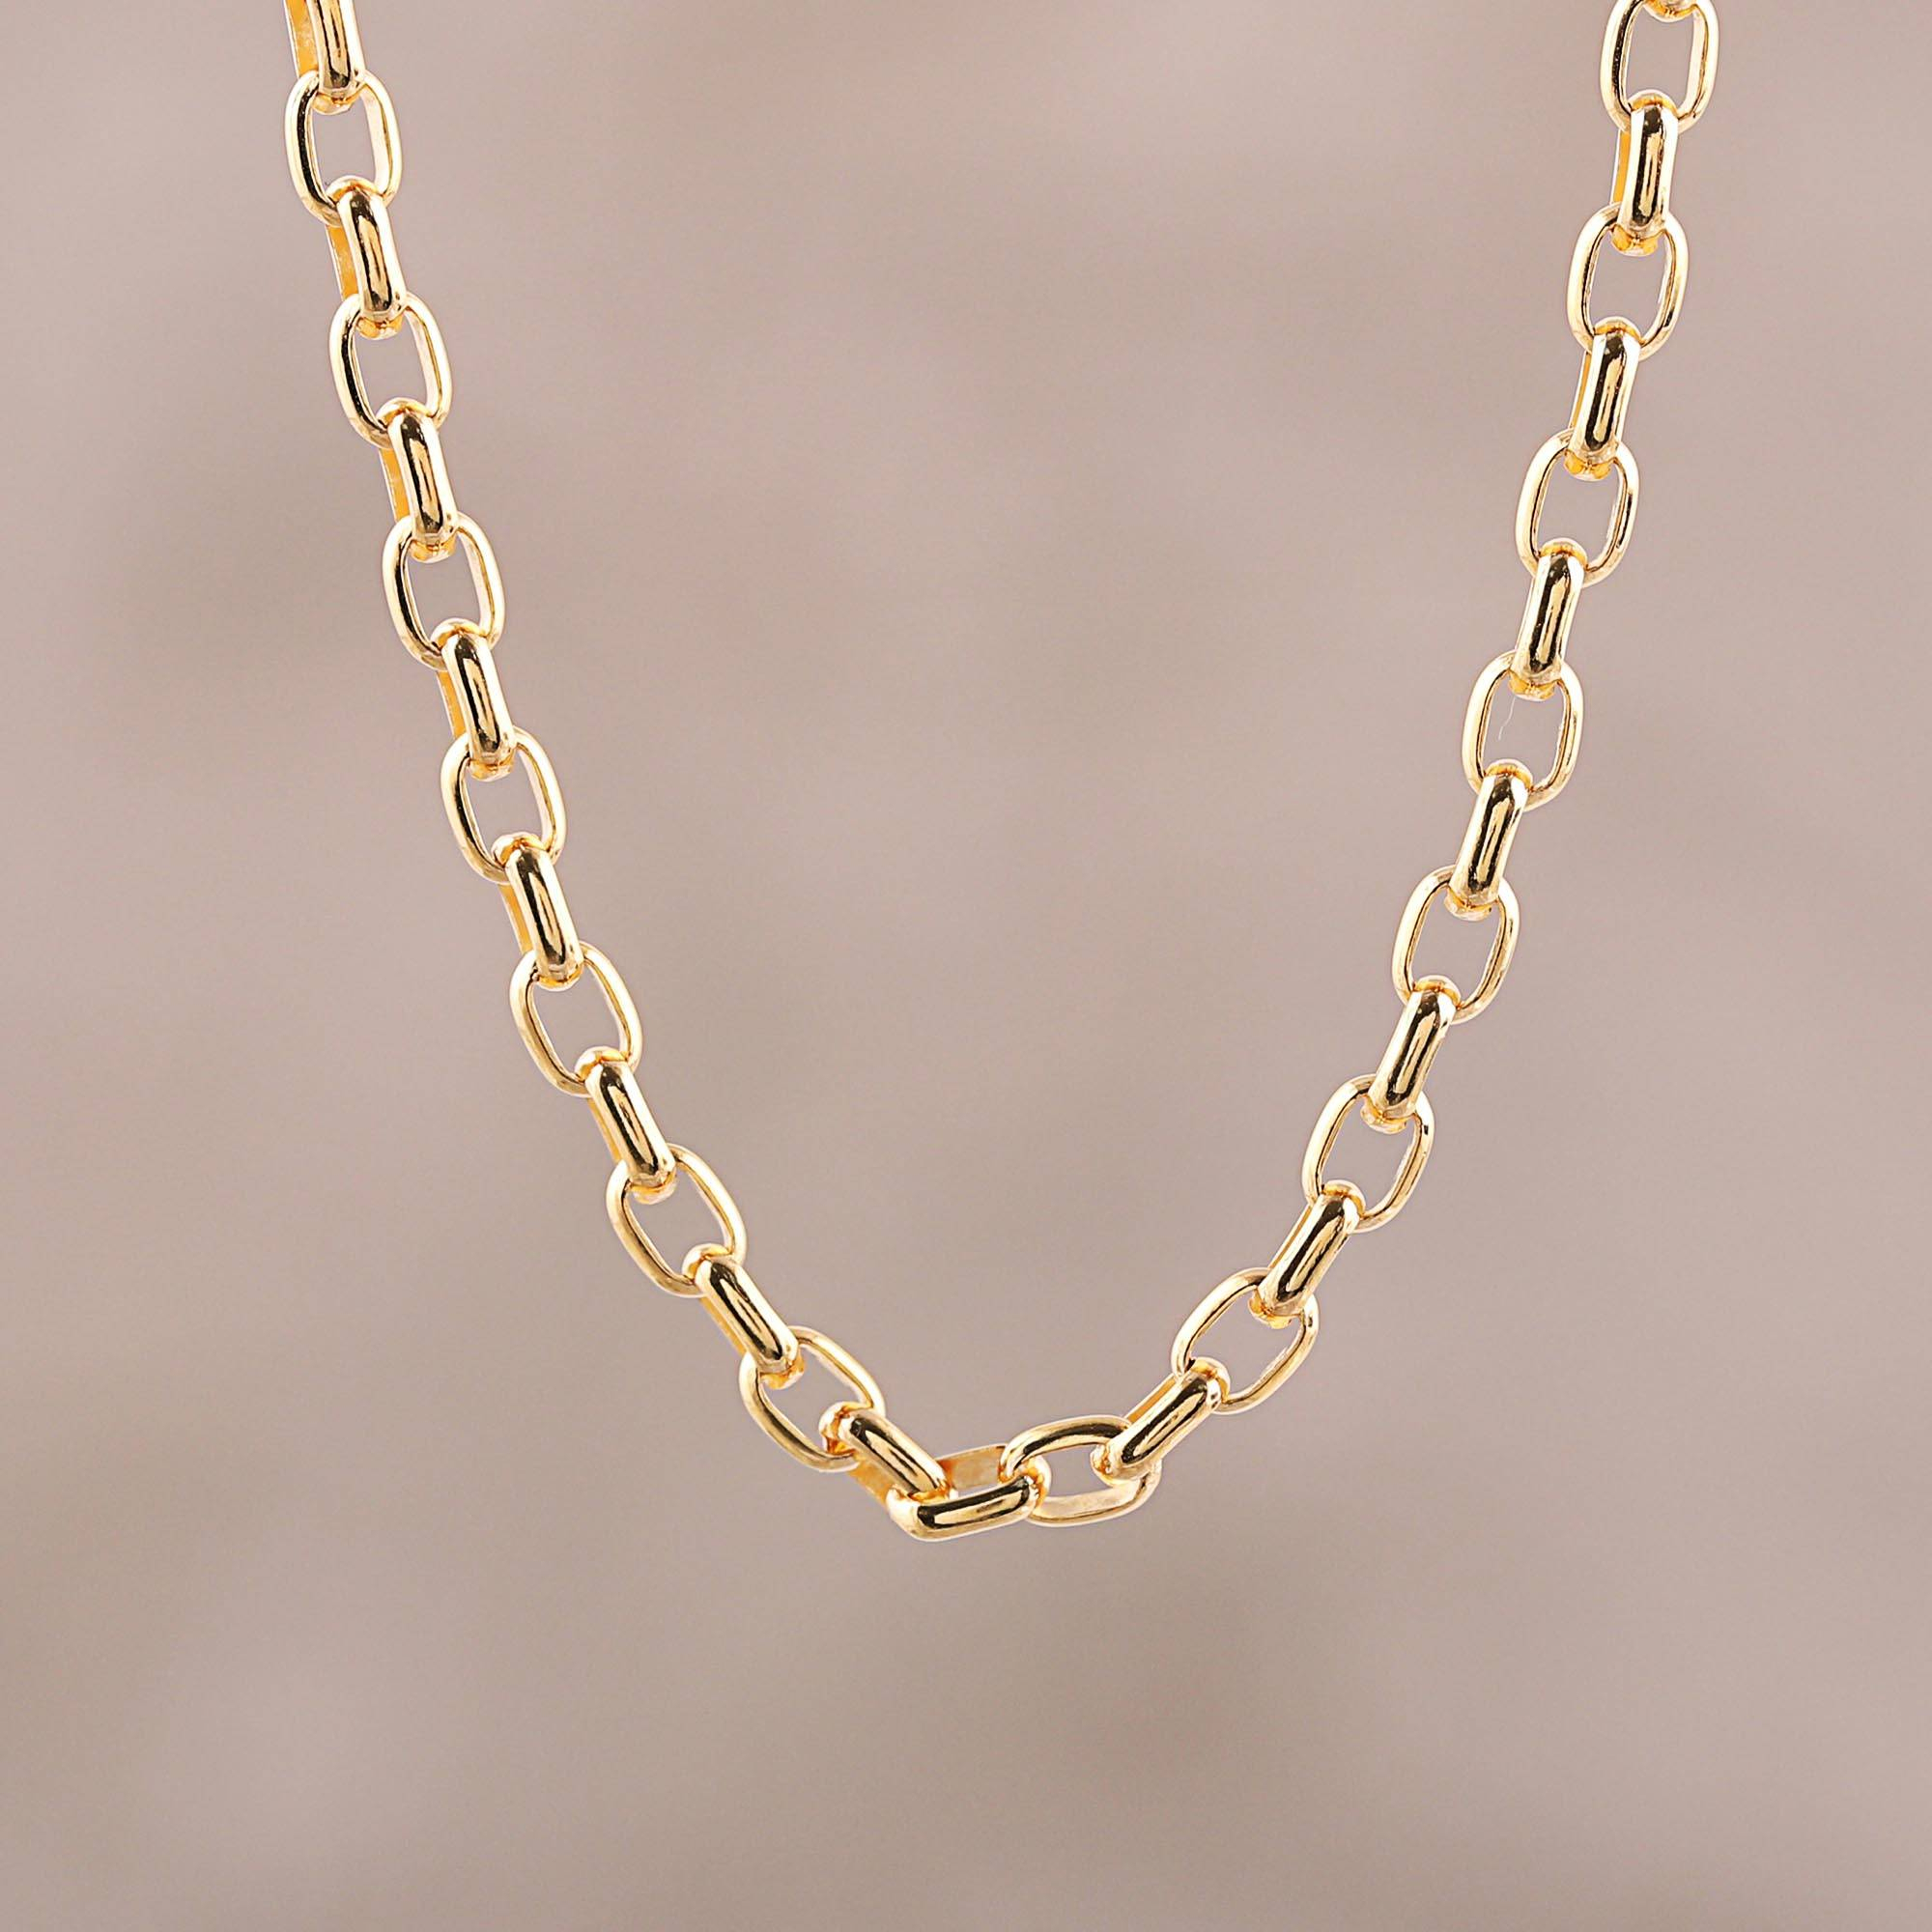 22K Gold Plated Sterling Silver Chain Necklace From India, 'classic Gold' Regarding Newest Classic Cable Chain Necklaces (View 5 of 25)